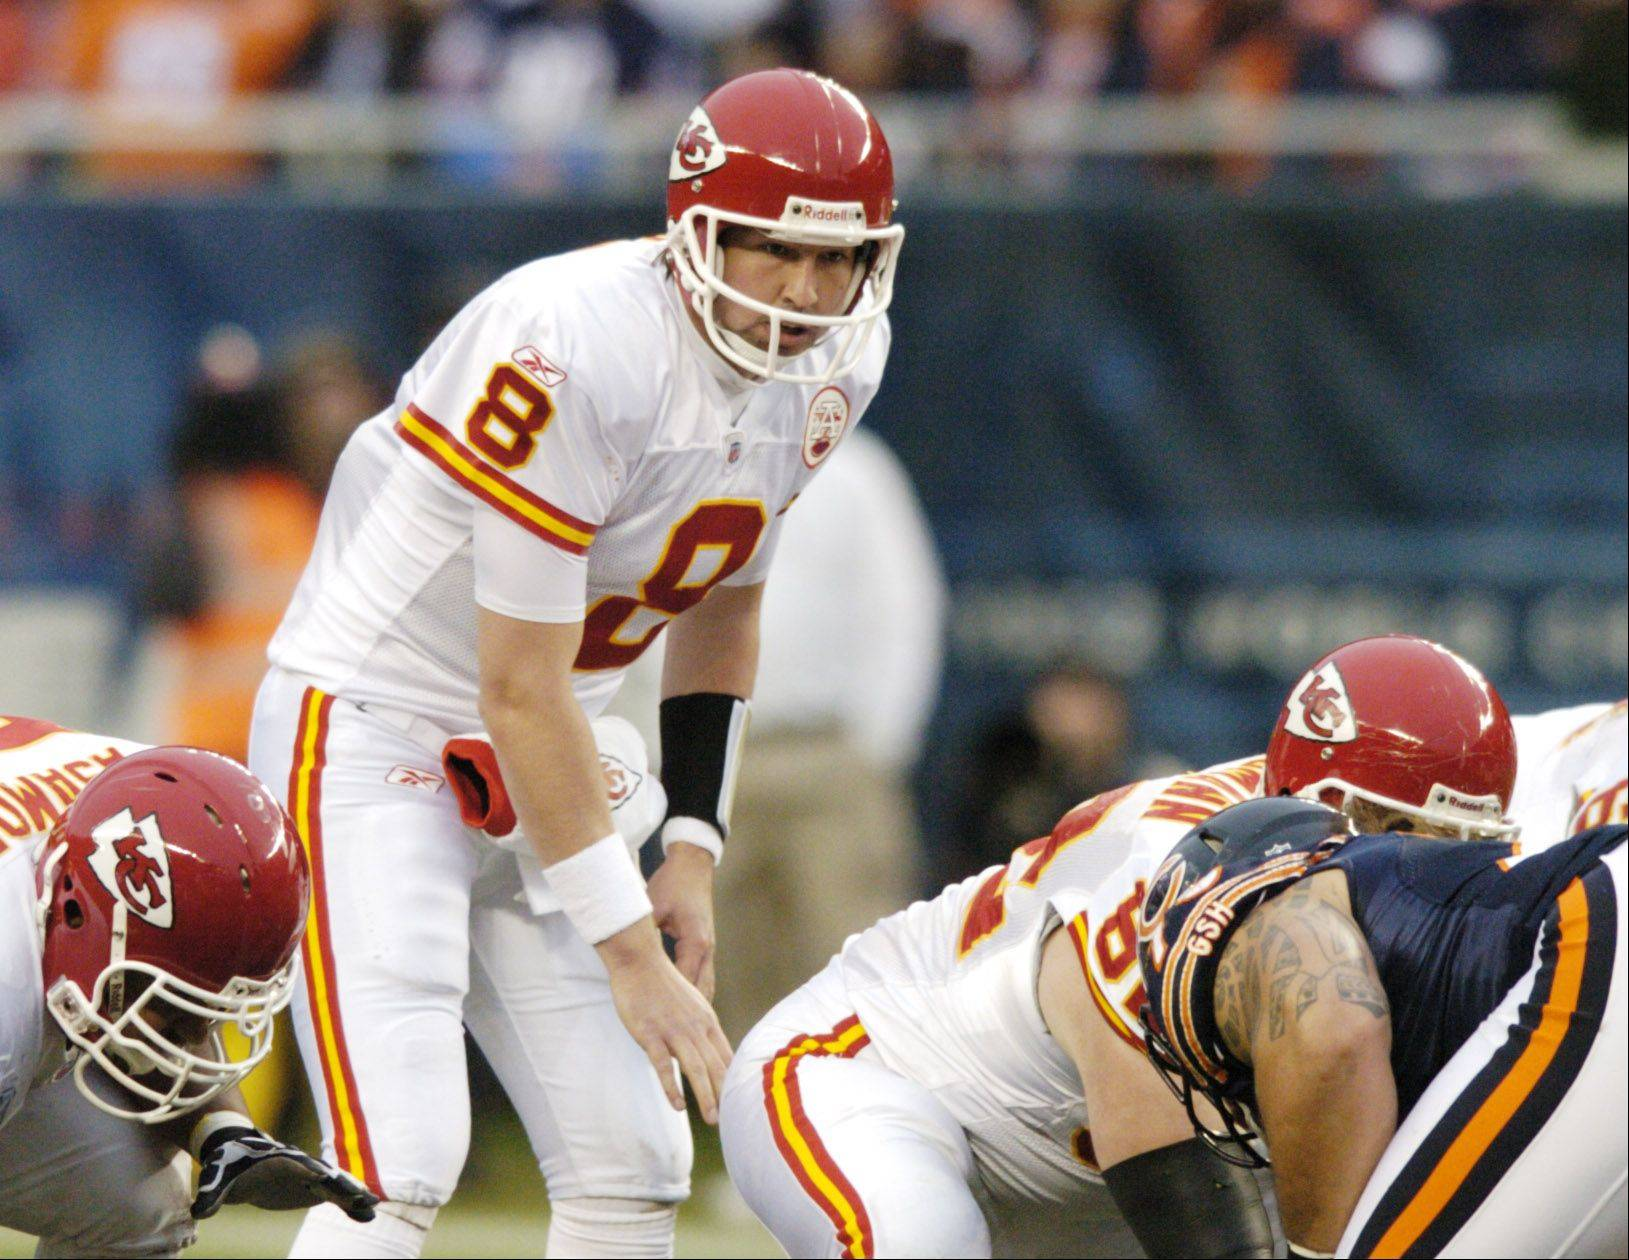 Kansas City Chiefs quarterback Kyle Orton played one down against the Bears, but he is expected to start Sunday against the Green Bay Packers.